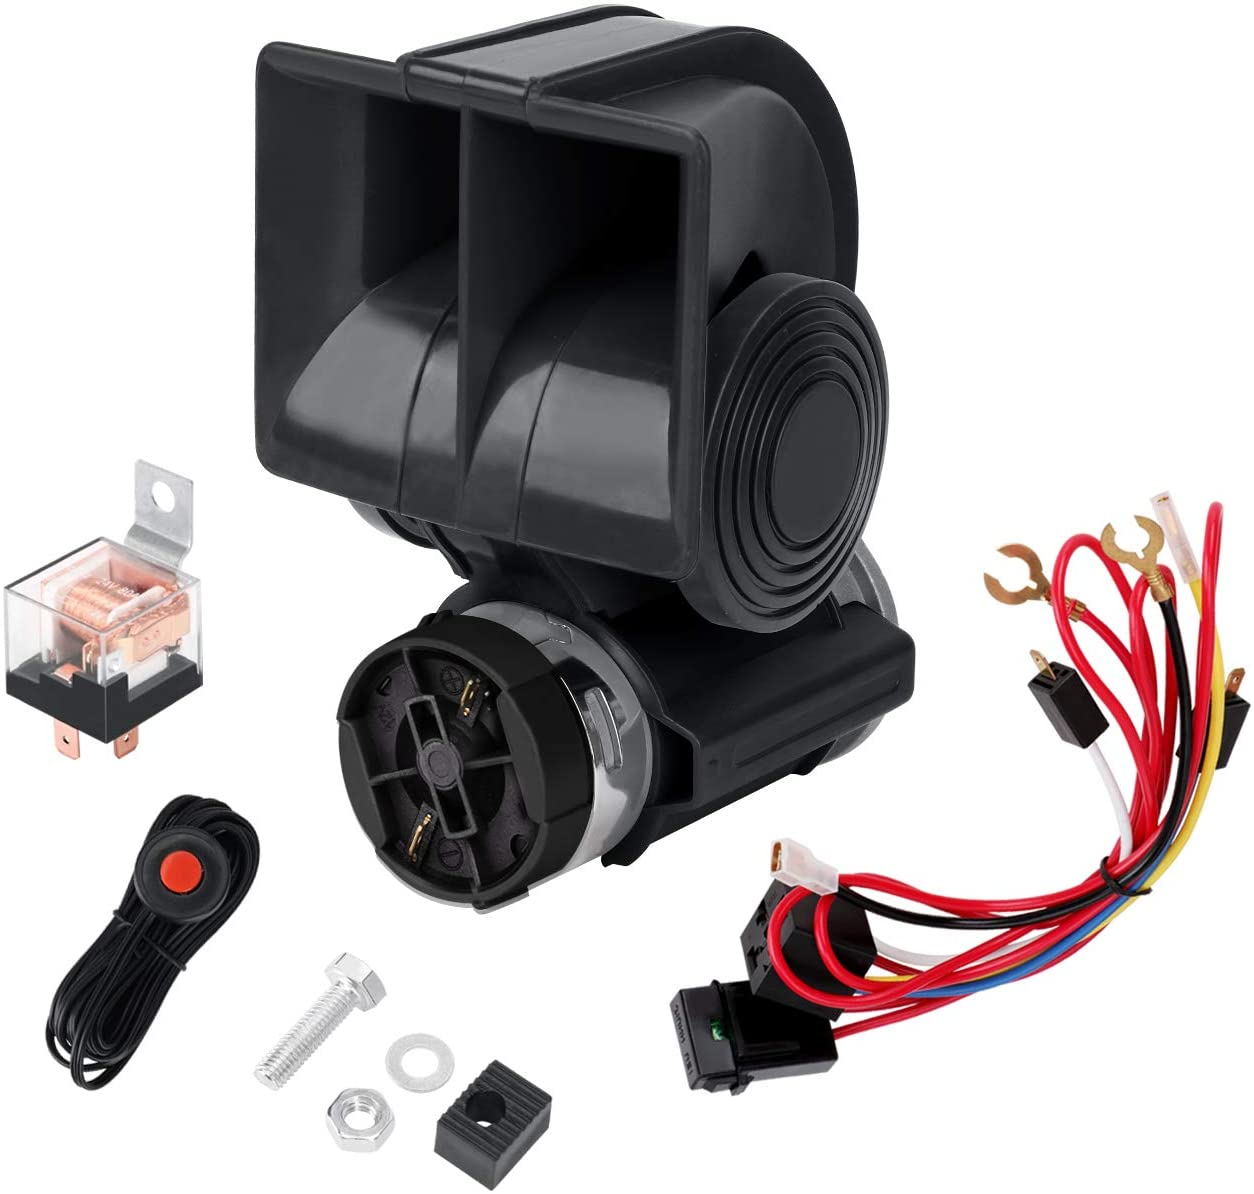 Amazon Com Seineca Air Car Horn 12v Compact With Compressor Automotive Relay Mini Nautilus Super Loud Snail Horn Kit For Truck Car Motorcycle 12v Black With Switch Automotive